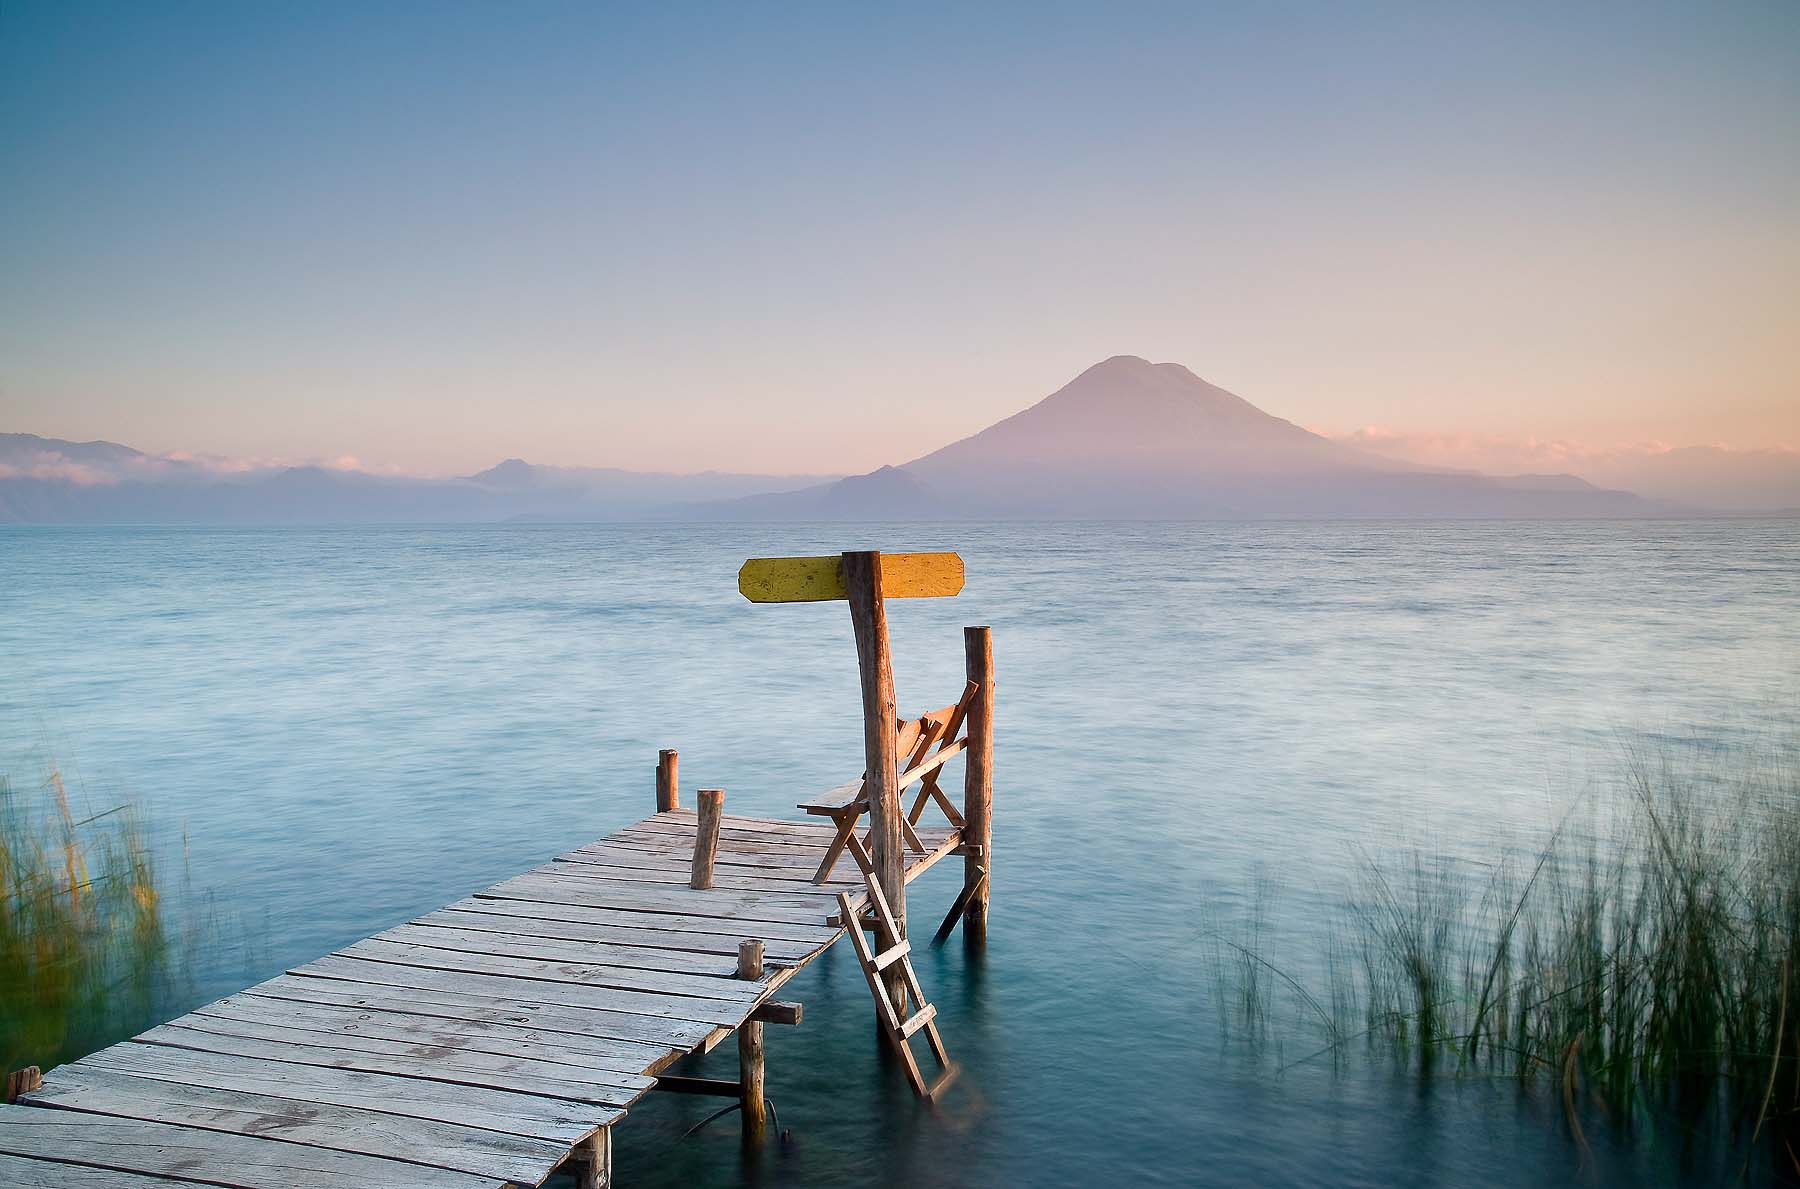 Santa-Cruz-Laguna-Lake-Atitlan-Highlands-Guatemala-Travel